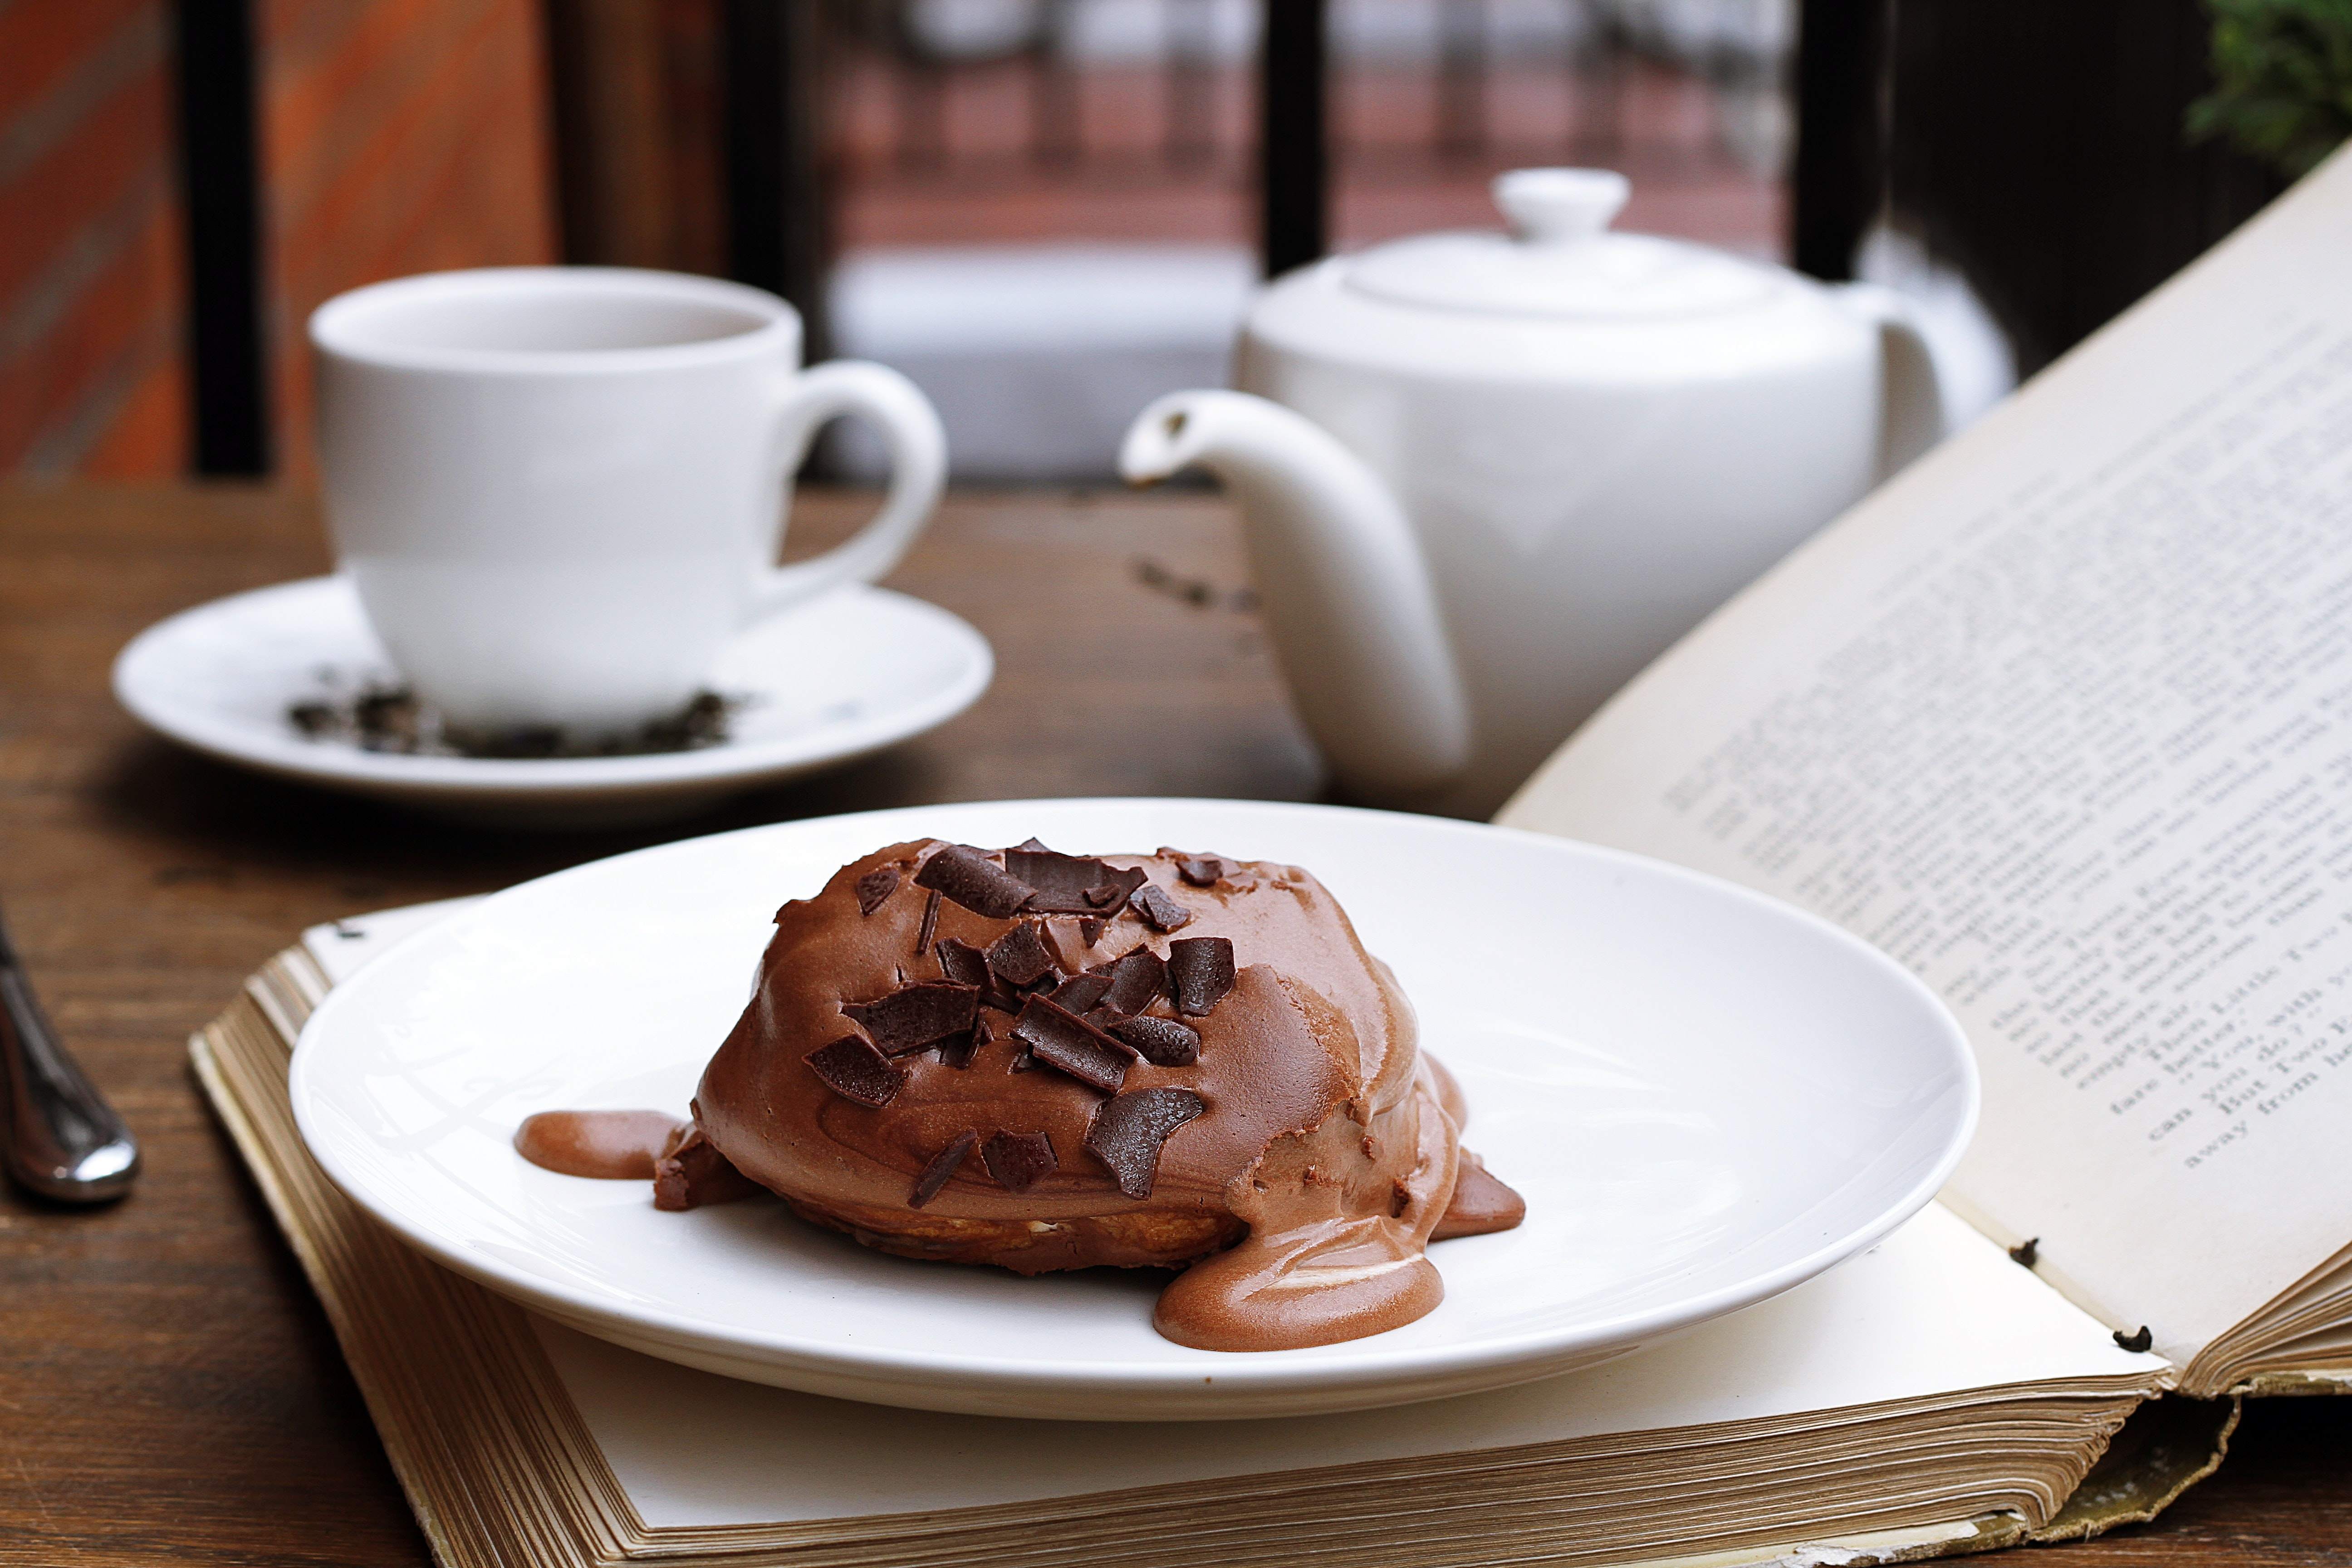 Chocolate dessert on an open book with a tea pot and tea cup in the background